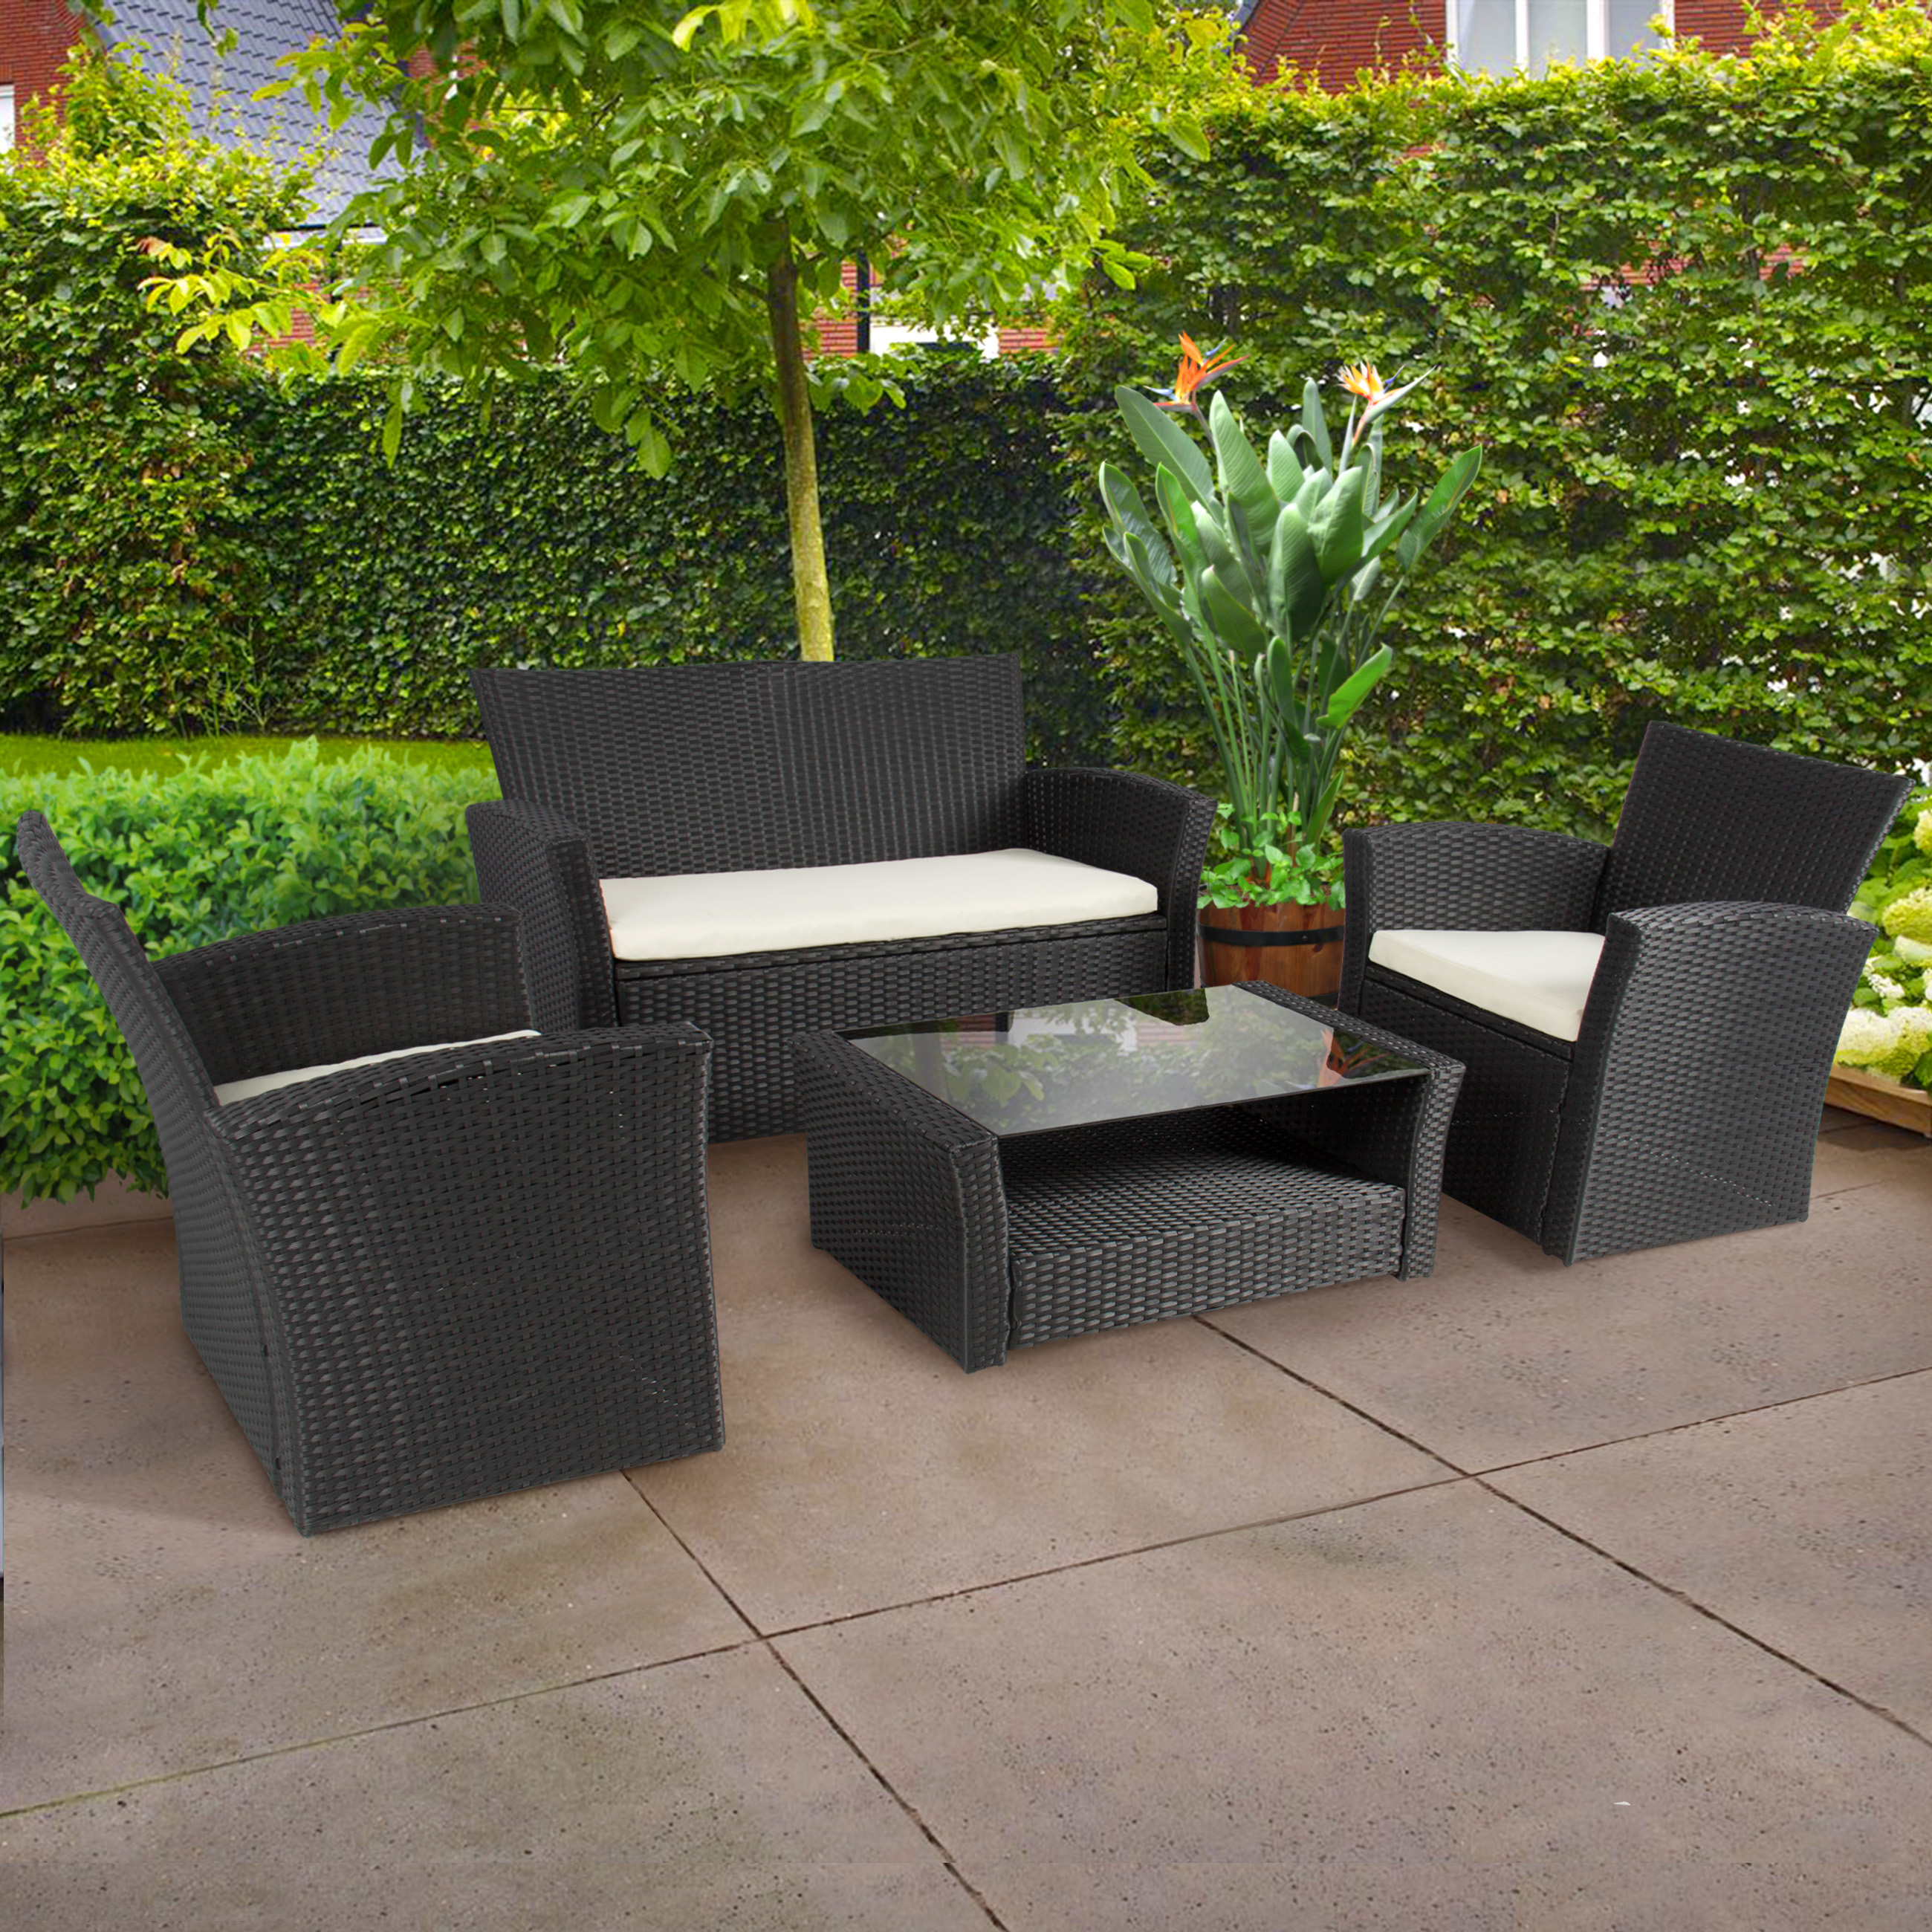 mahogany outdoor furniture